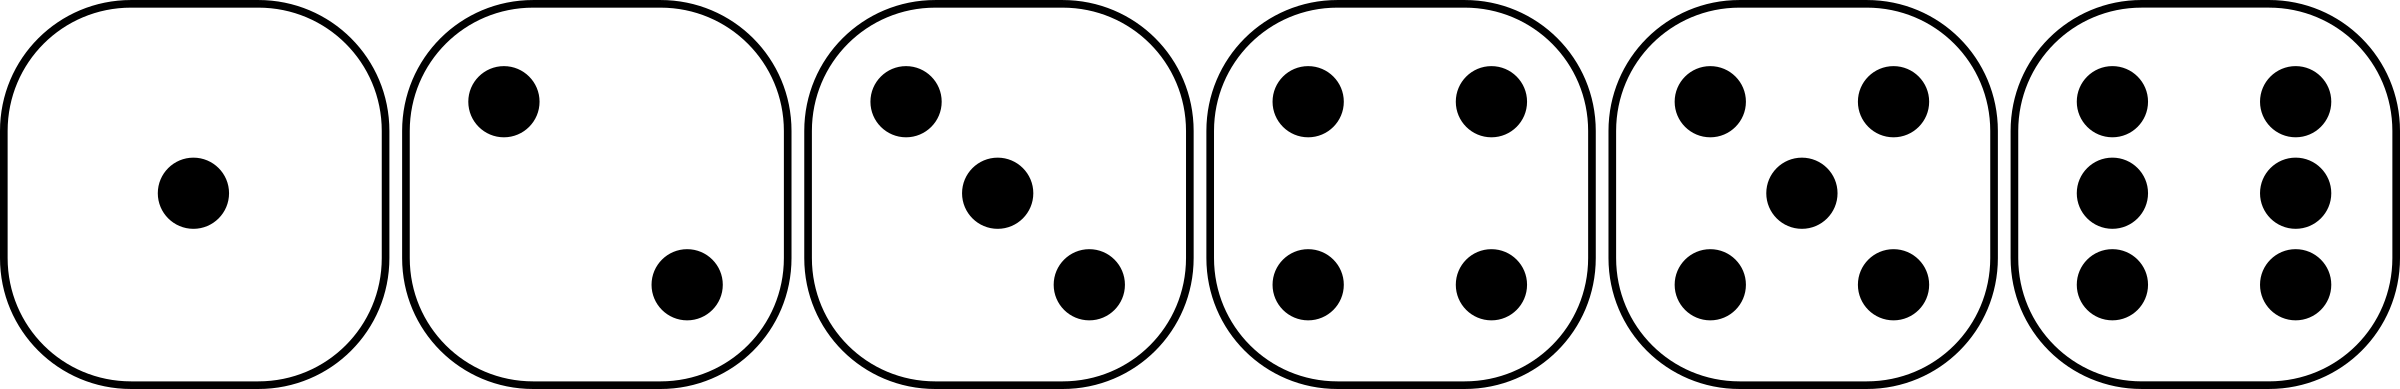 six-sided dice faces lio 01 by Anonymous